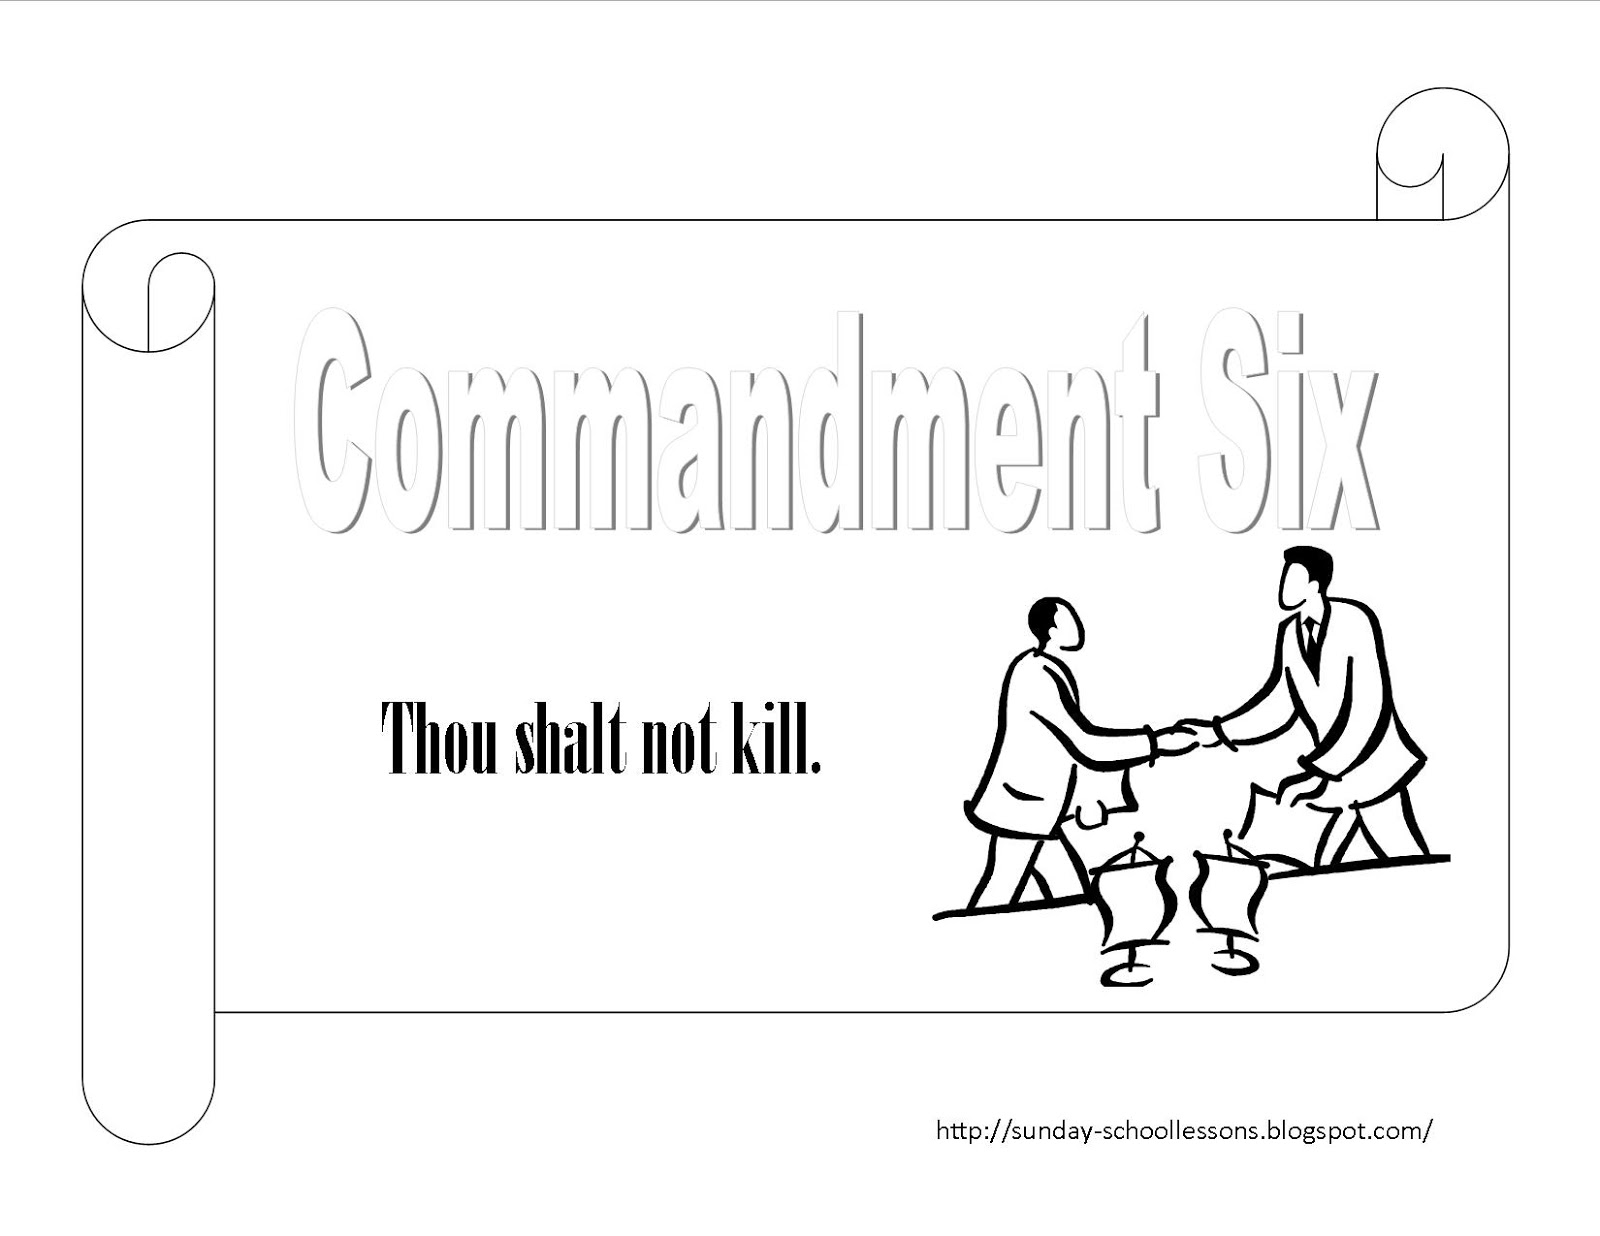 coloring page 10 commandments sunday school lessons of plenty 10 commandments coloring 10 page commandments